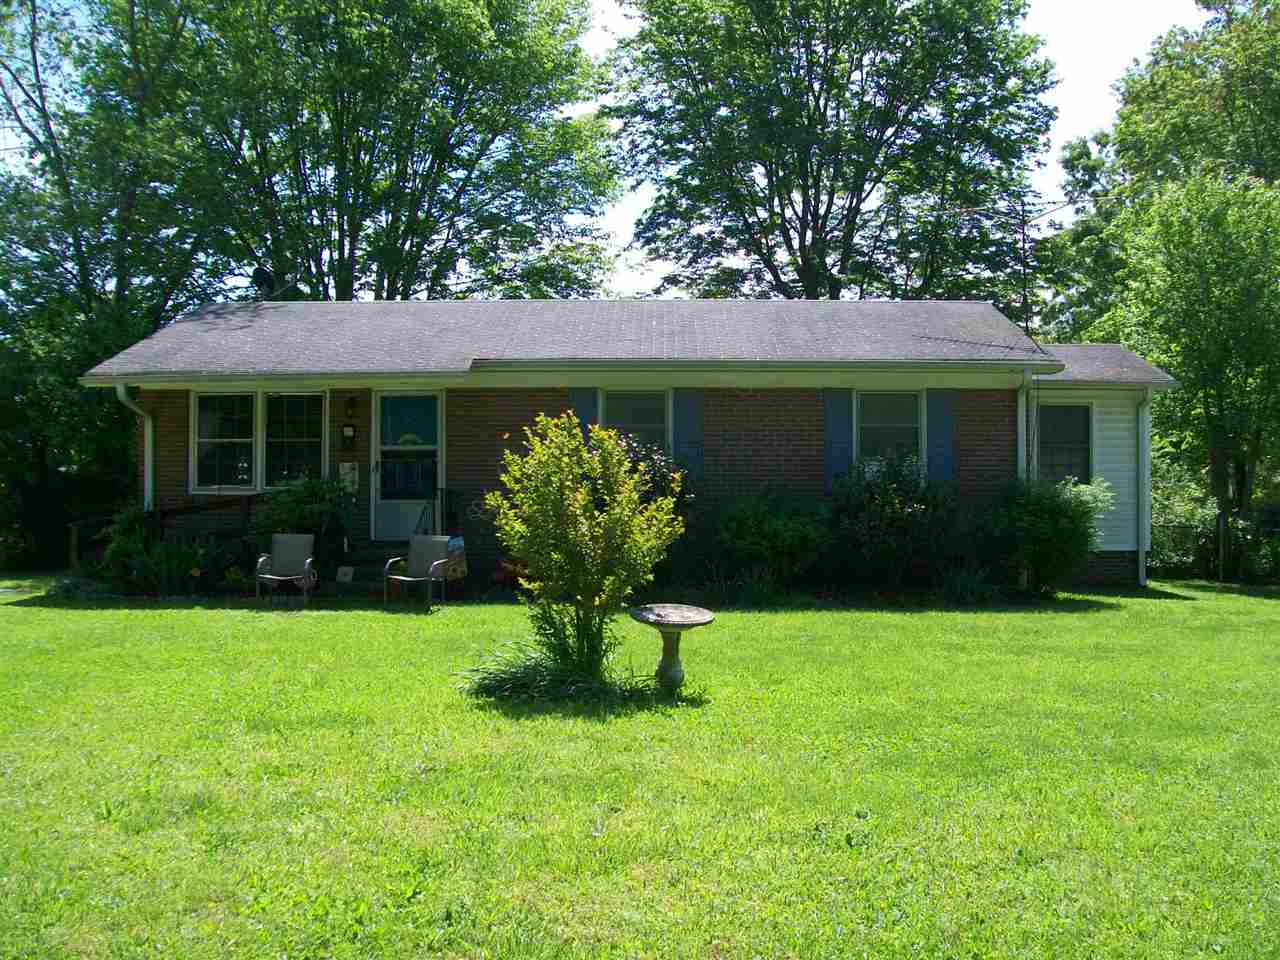 18 Cartwright St, York in York County, SC 29745 Home for Sale